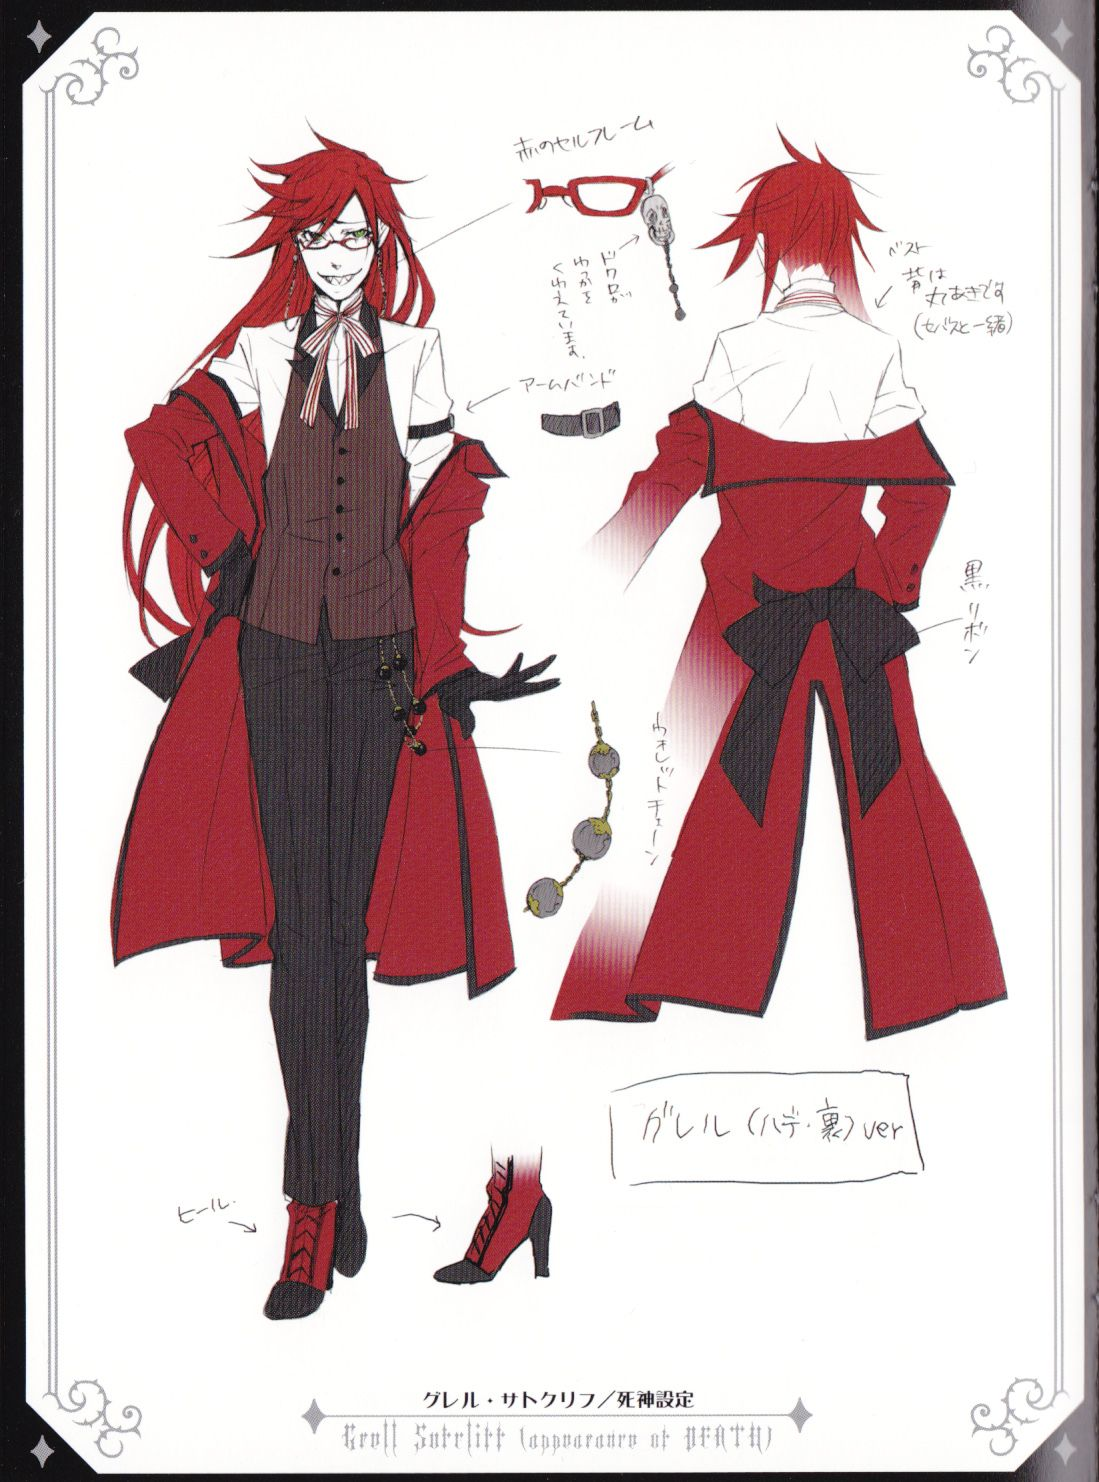 Black Butler Shinigami Grell Sutcliff Red Death Uniform Cosplay Costumes Outfits